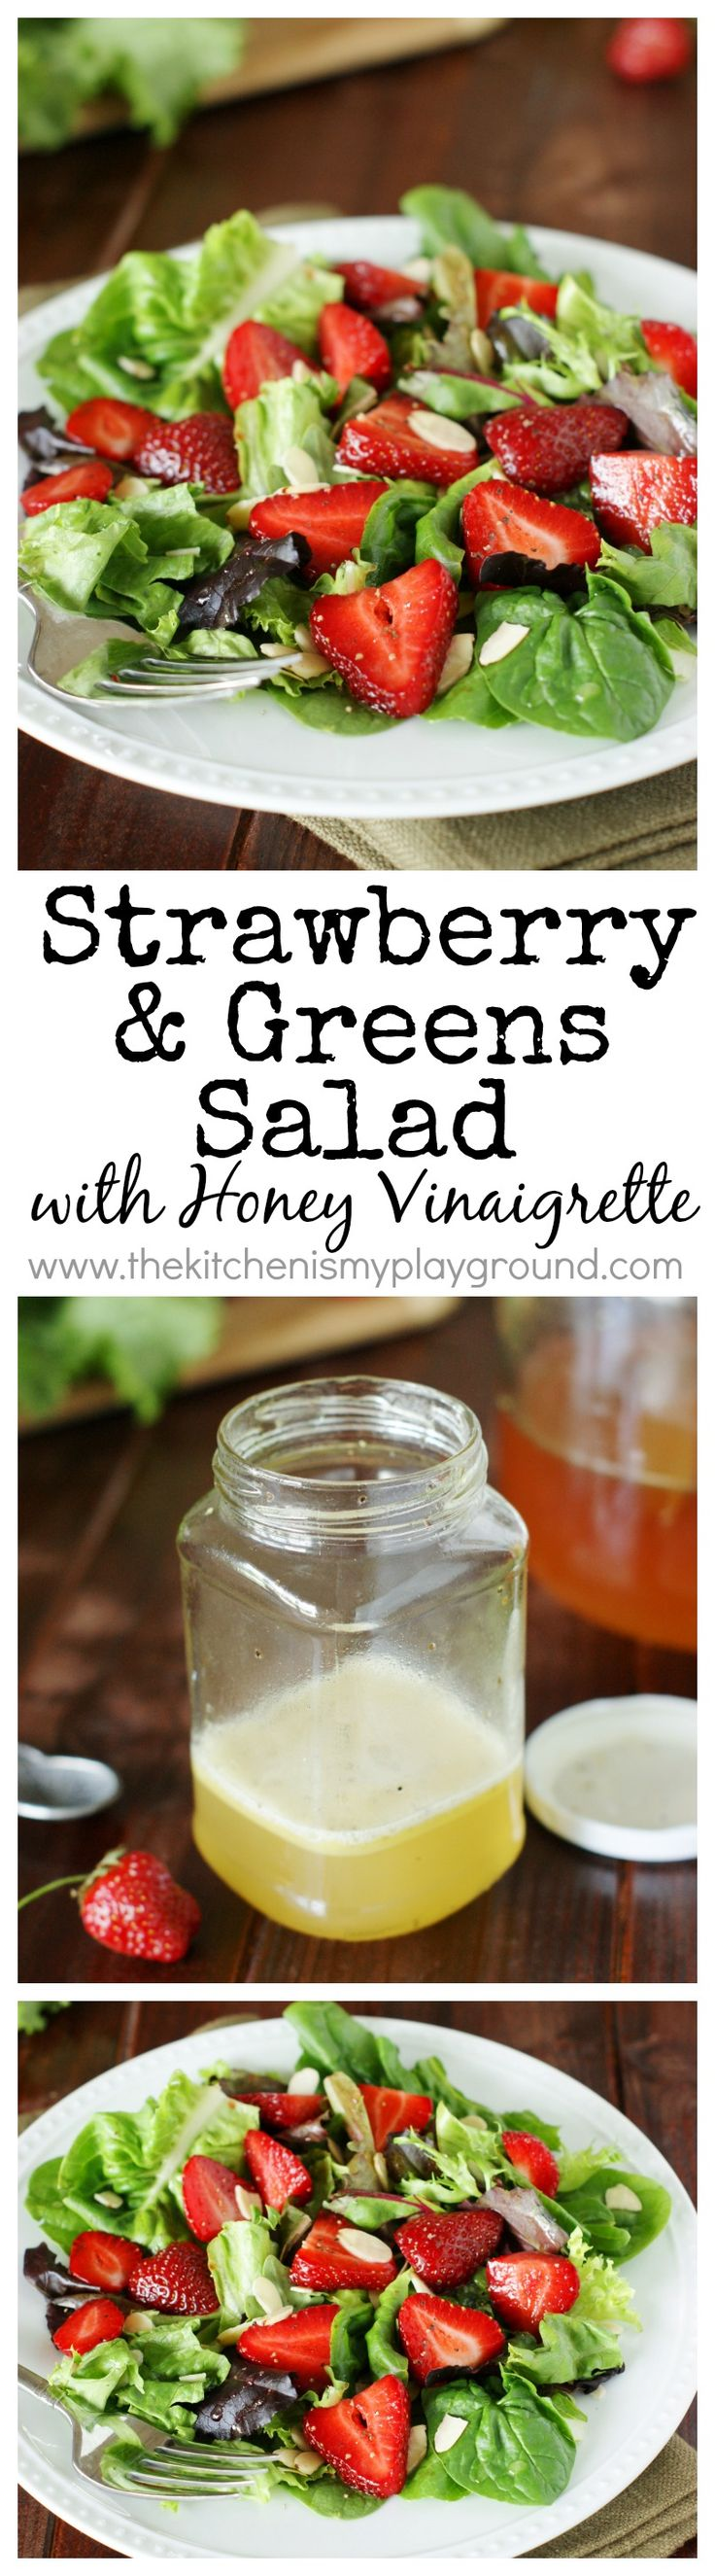 Strawberry & Greens Salad with Honey Vinaigrette ~ a simple & very flavorful salad.  Sure to impress!  www.thekitchenismyplayground.com